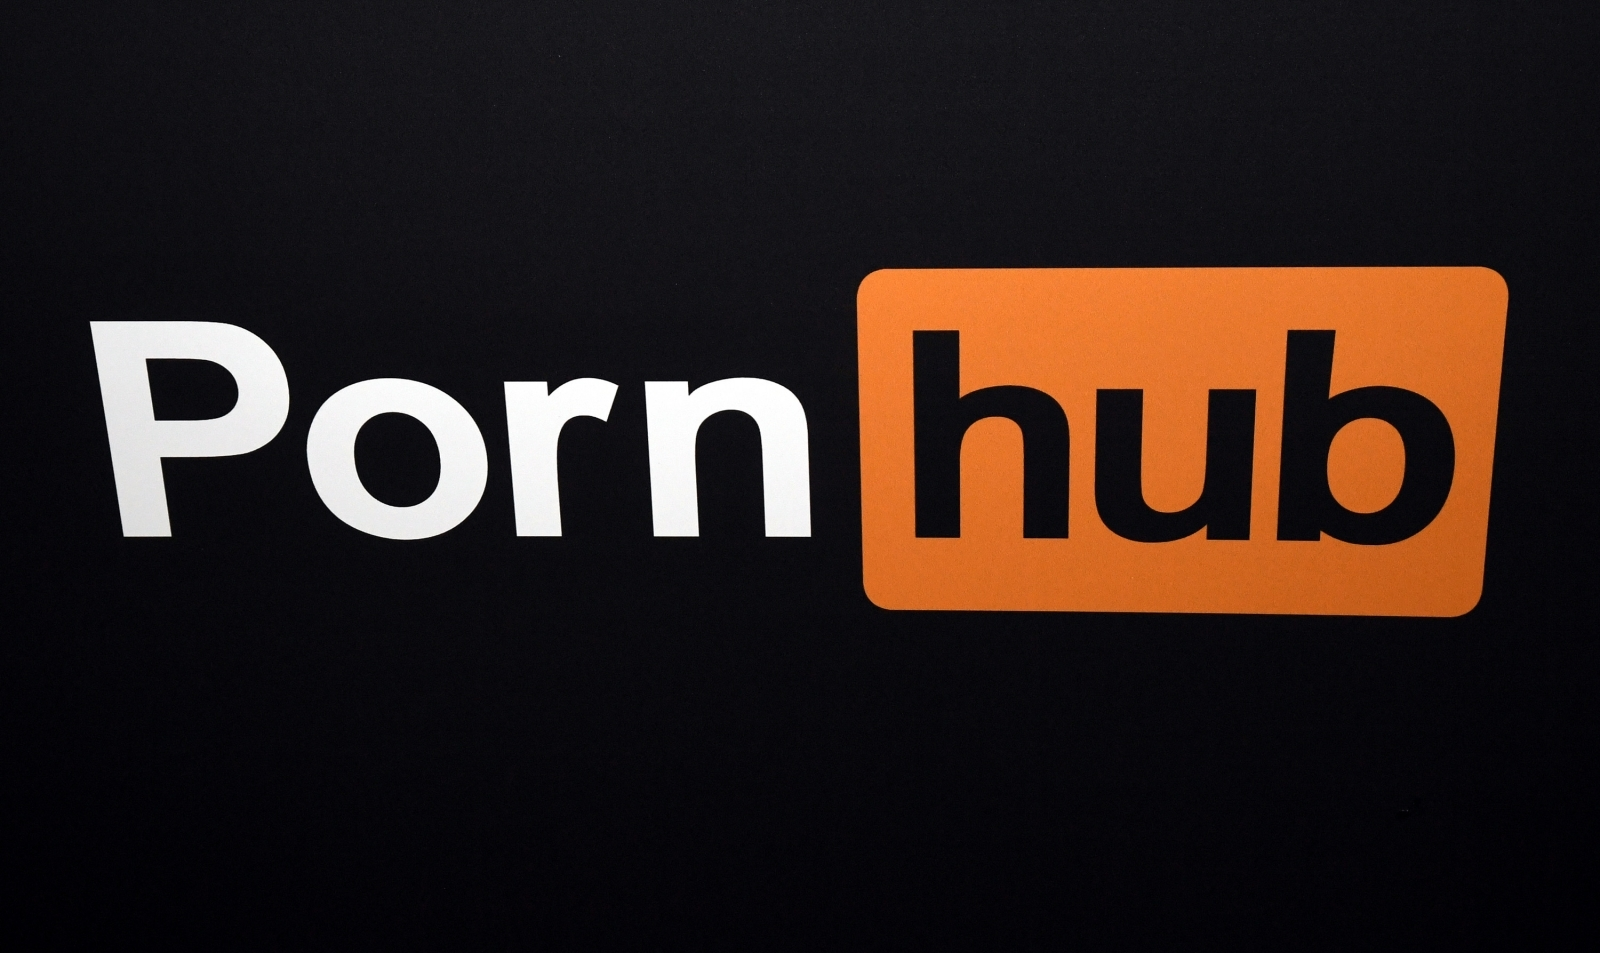 Pornhub offers free premium videos to women on their periods